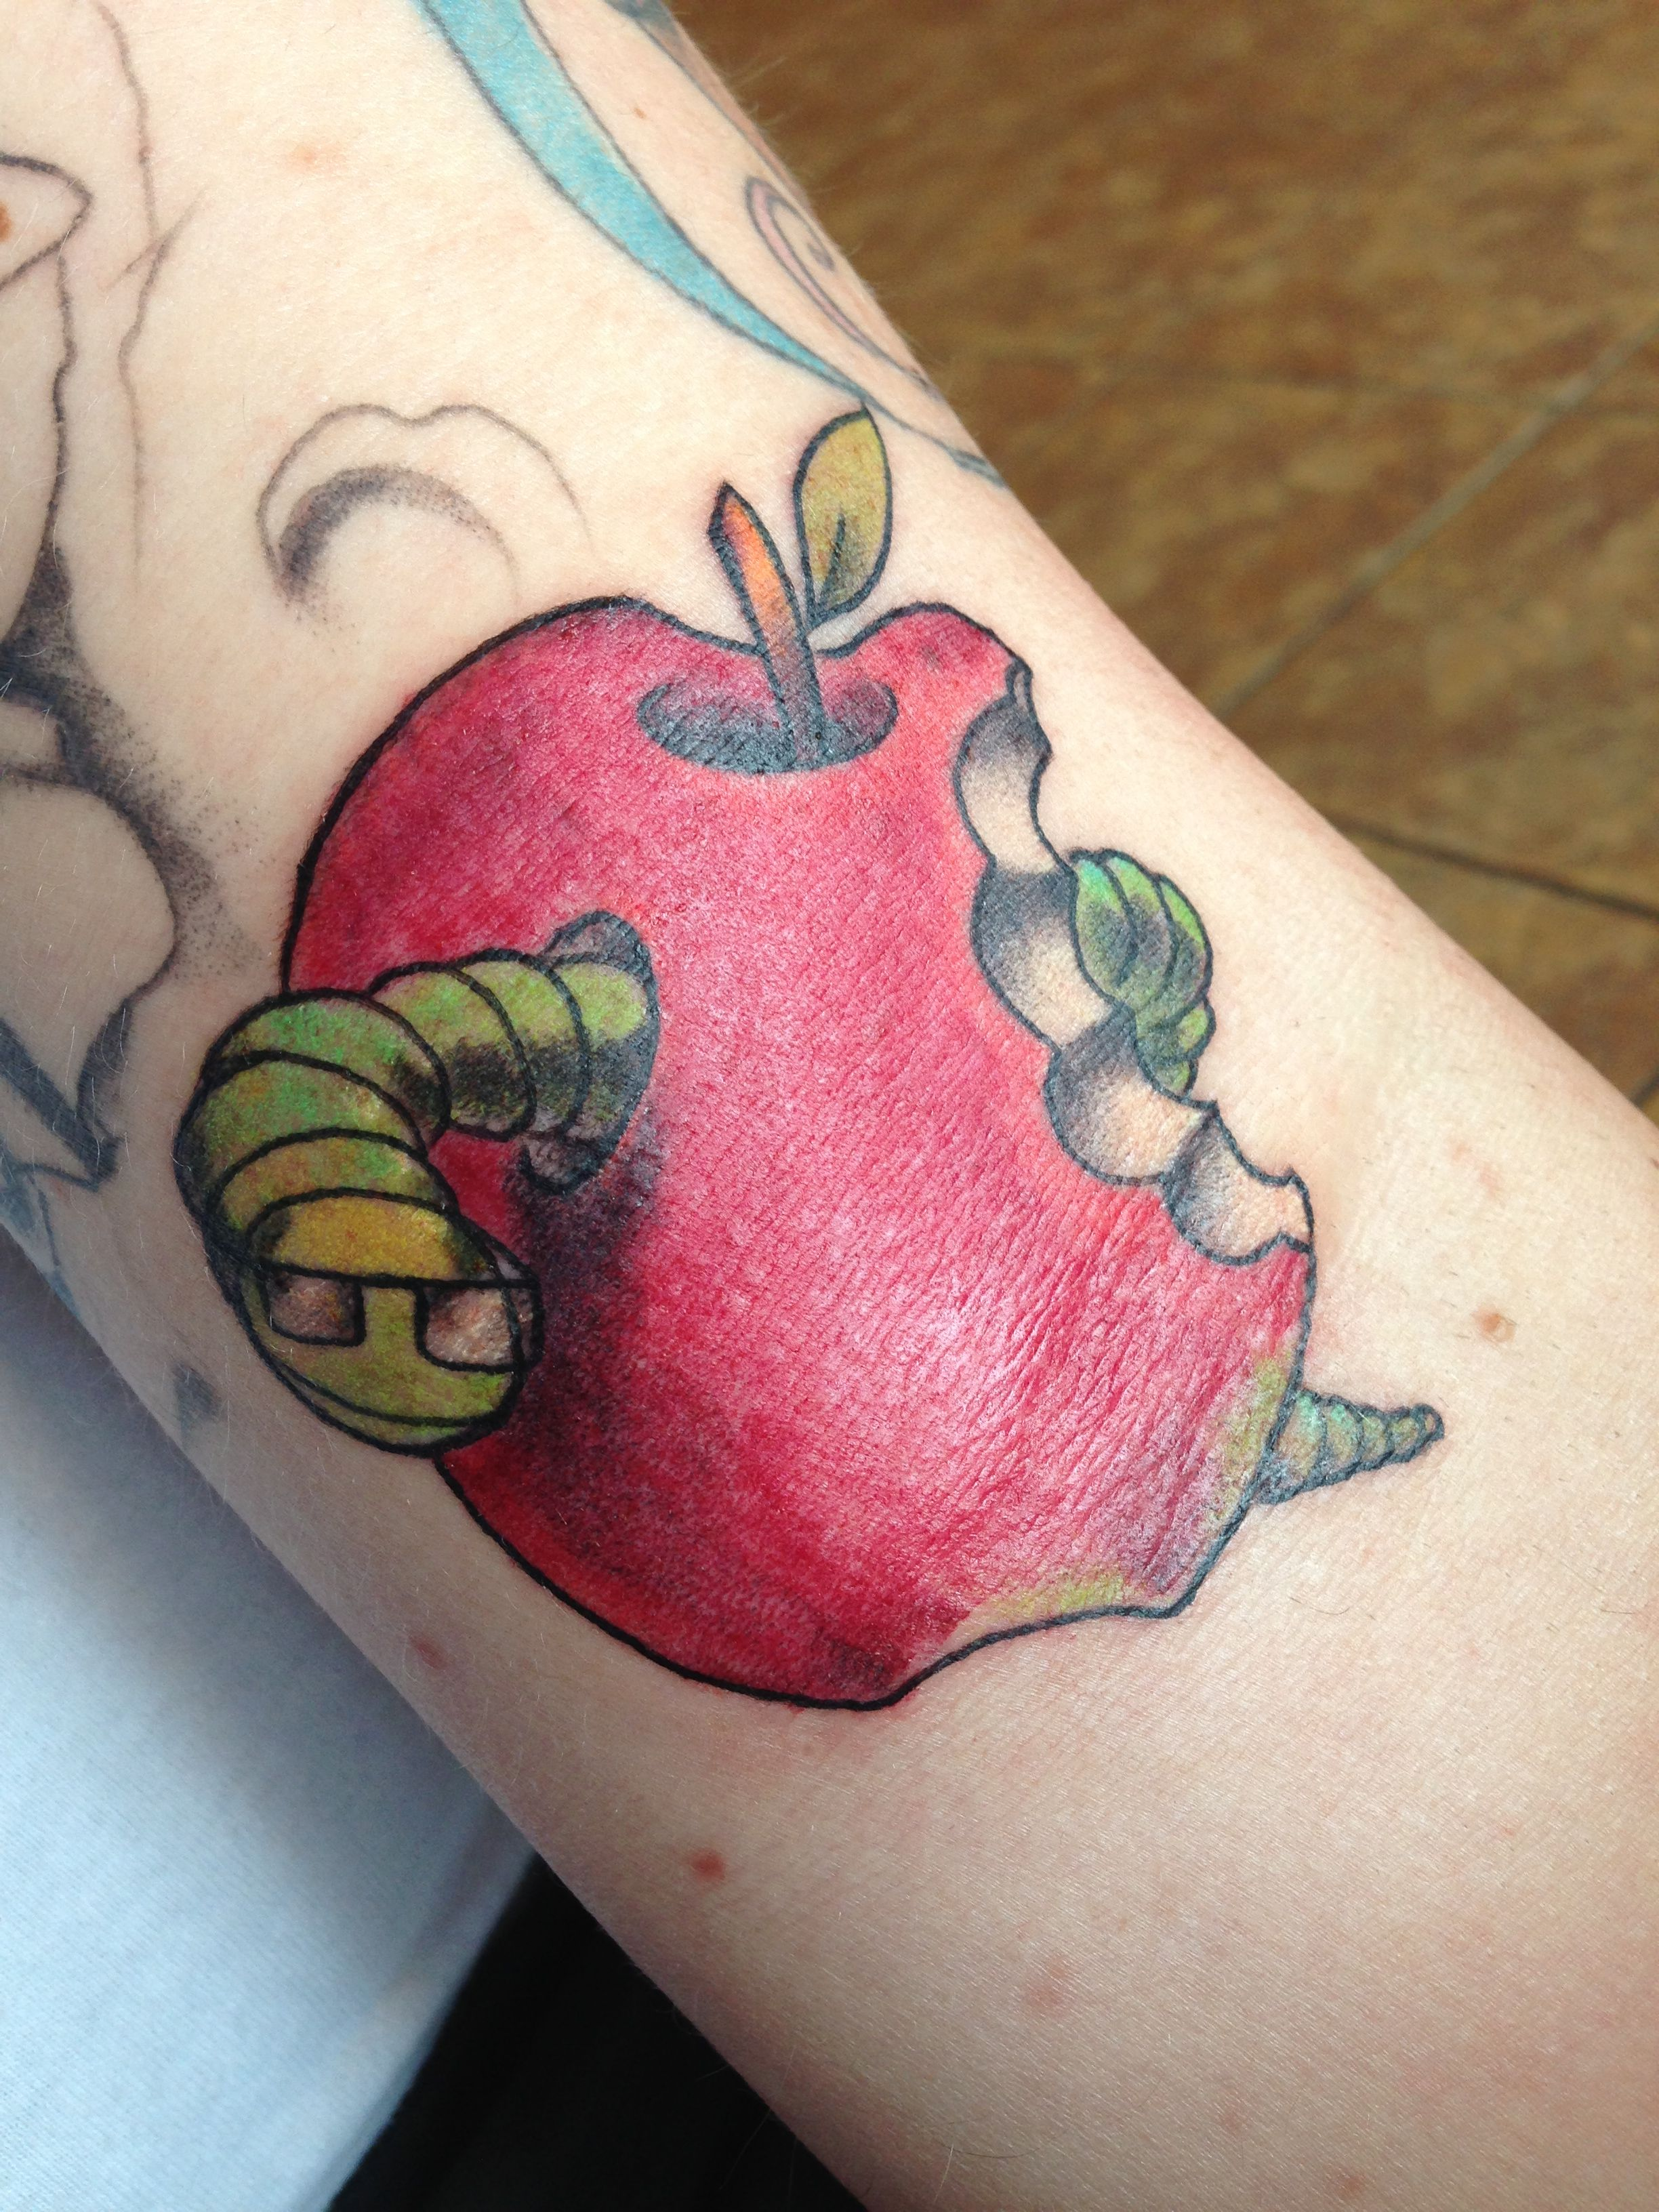 Apple Tattoo With Book Worm What About A Similar One But With